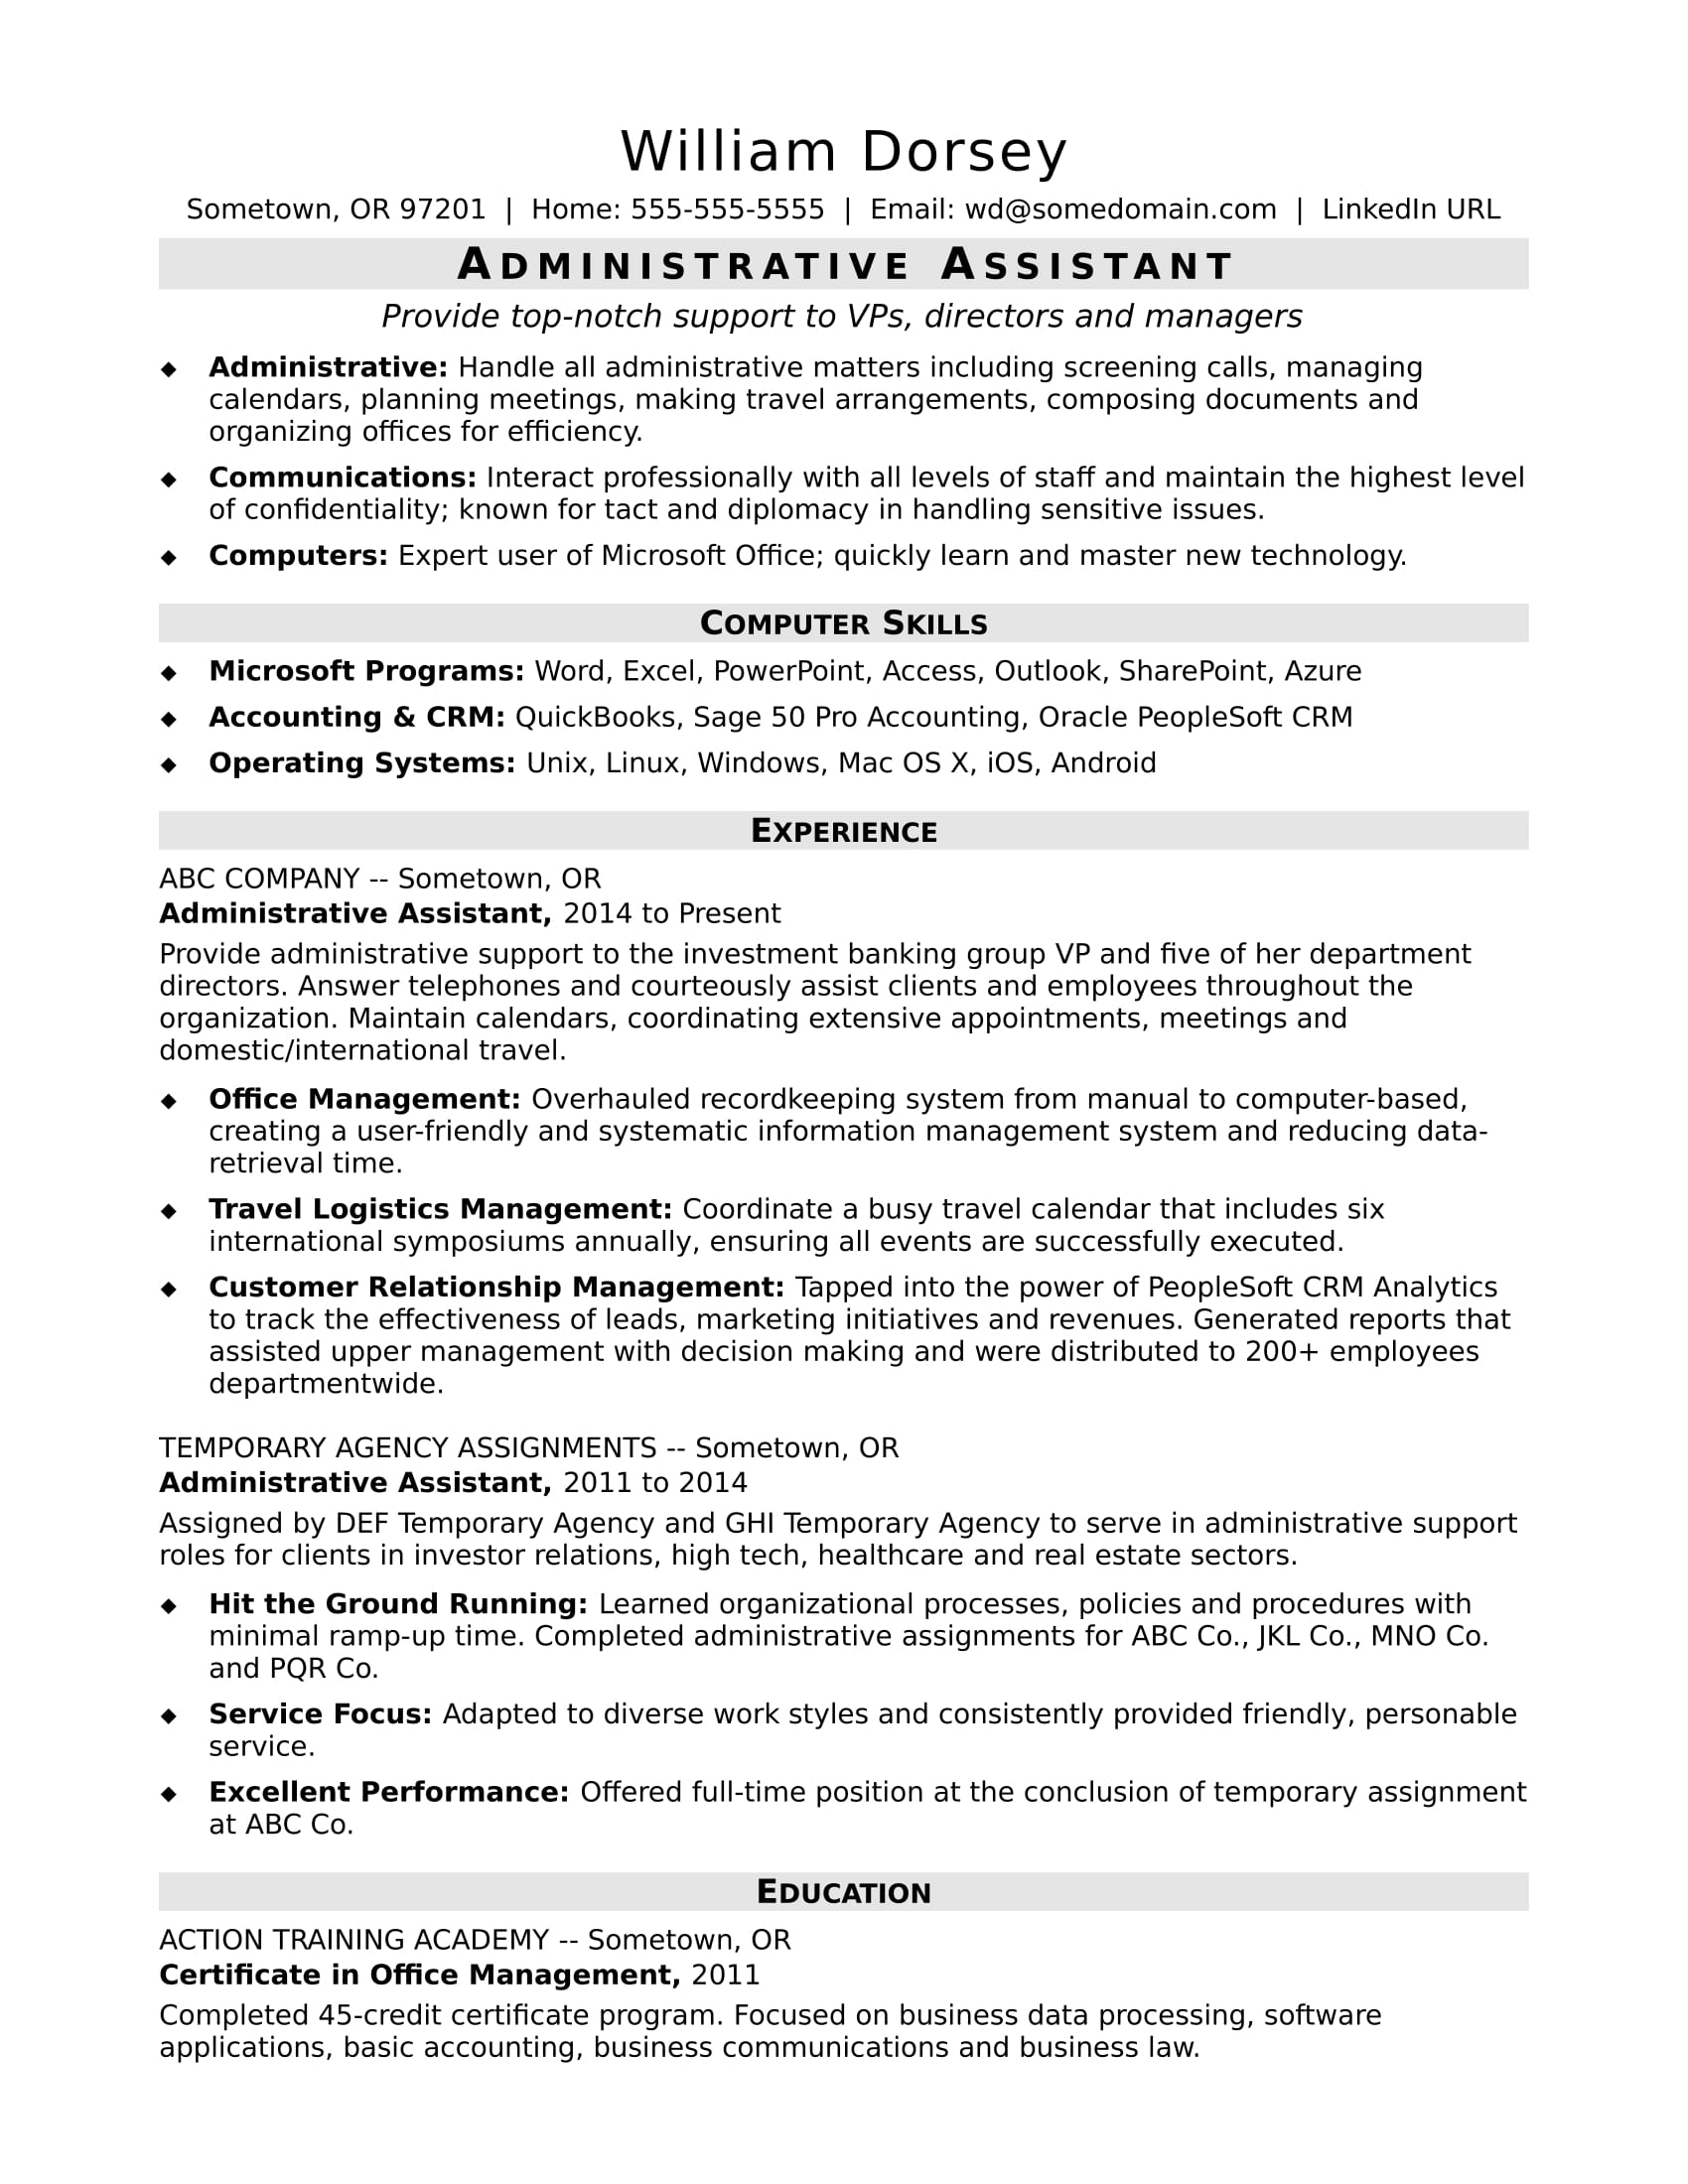 Midlevel Administrative Assistant Resume Sample